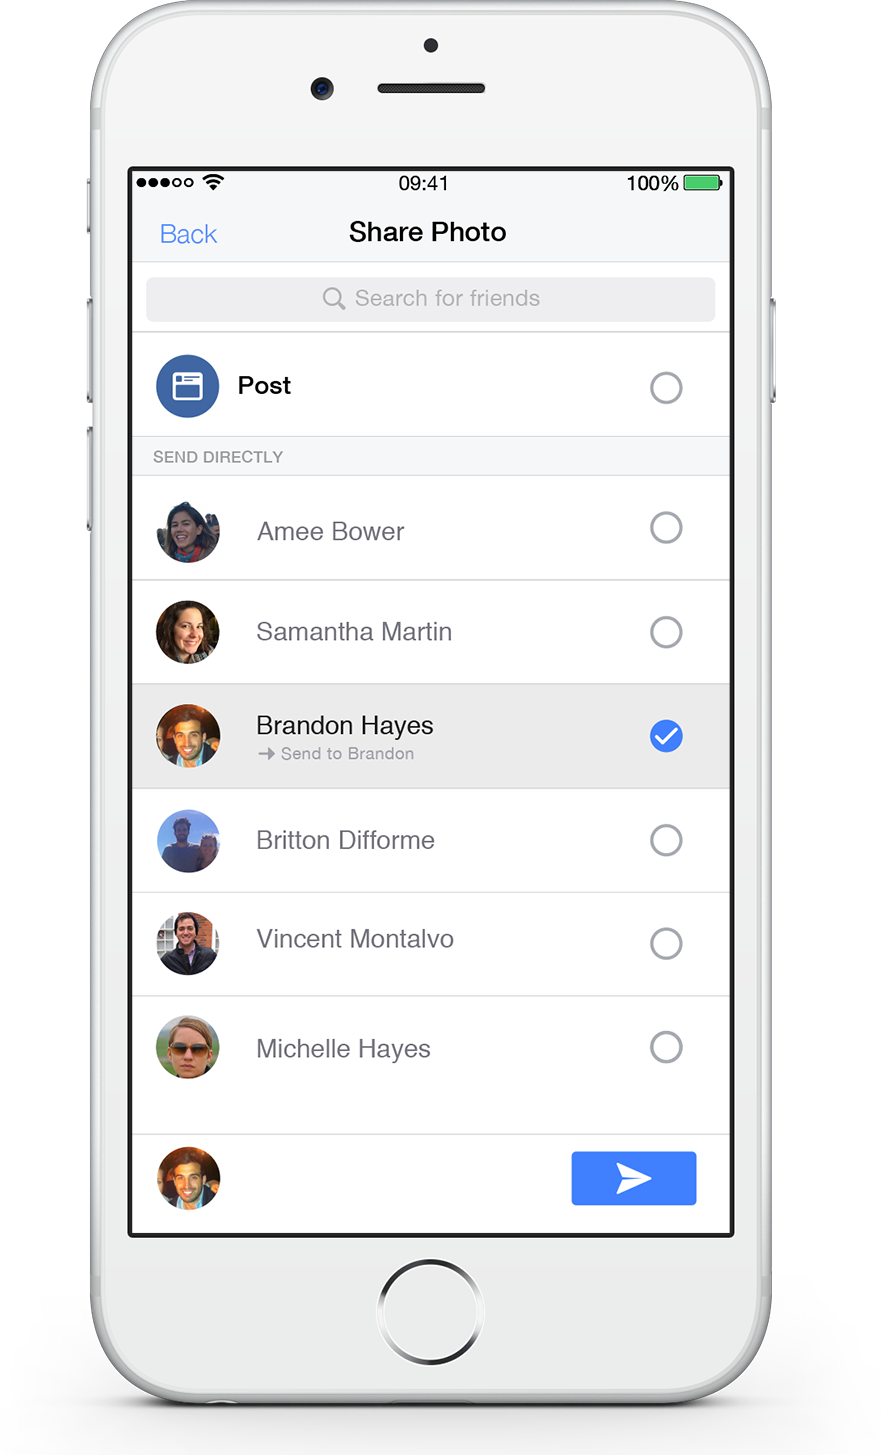 Since That Acquisition, Facebook Has Begun Deploying All Manner Of Tests  And Incremental Product Rollouts Temporary Chat Messaging Erase An Image  For Good